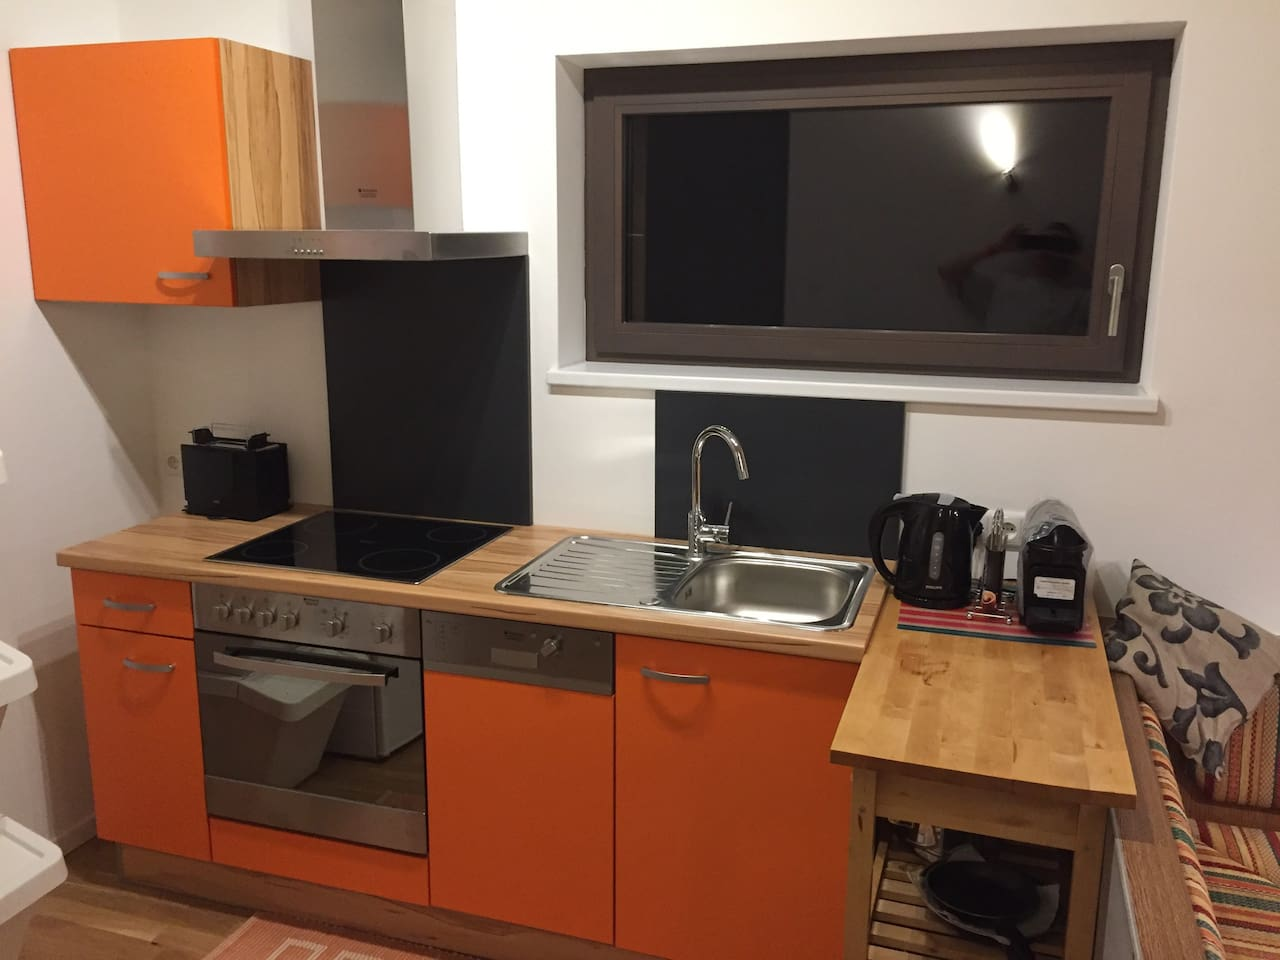 Boots Kitchen Appliances Voucher Haus 37 Where Your Dream Winter Holiday Begins Apartments For